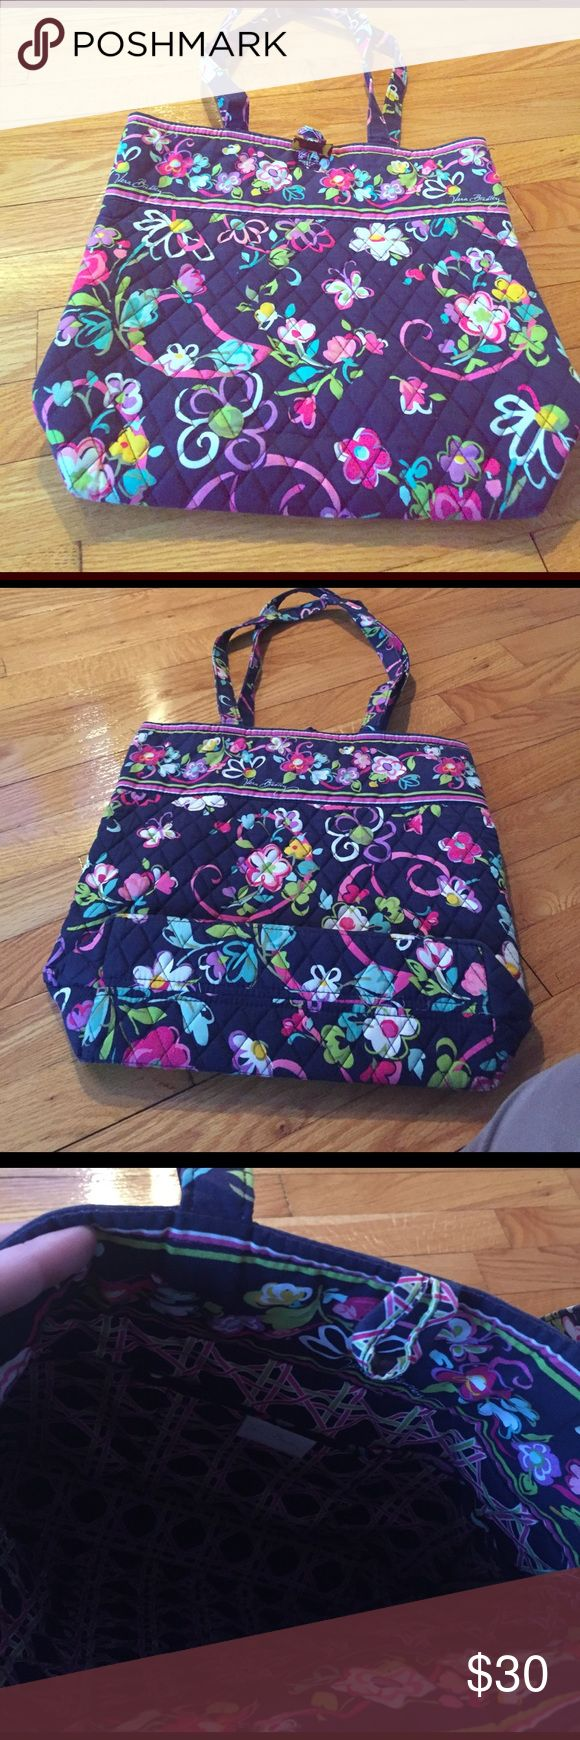 """Vera Bradley Tote in Ribbons pattern Cotton Tote in excellent condition. Ribbons was a Breast Cancer Foundation pattern.  Tortoise toggle Three interior pockets Removable baseboard Dimensions 11 ¾"""" W x 13 ½"""" H x 4"""" D - 12 ½"""" strap drop Vera Bradley Bags Totes"""